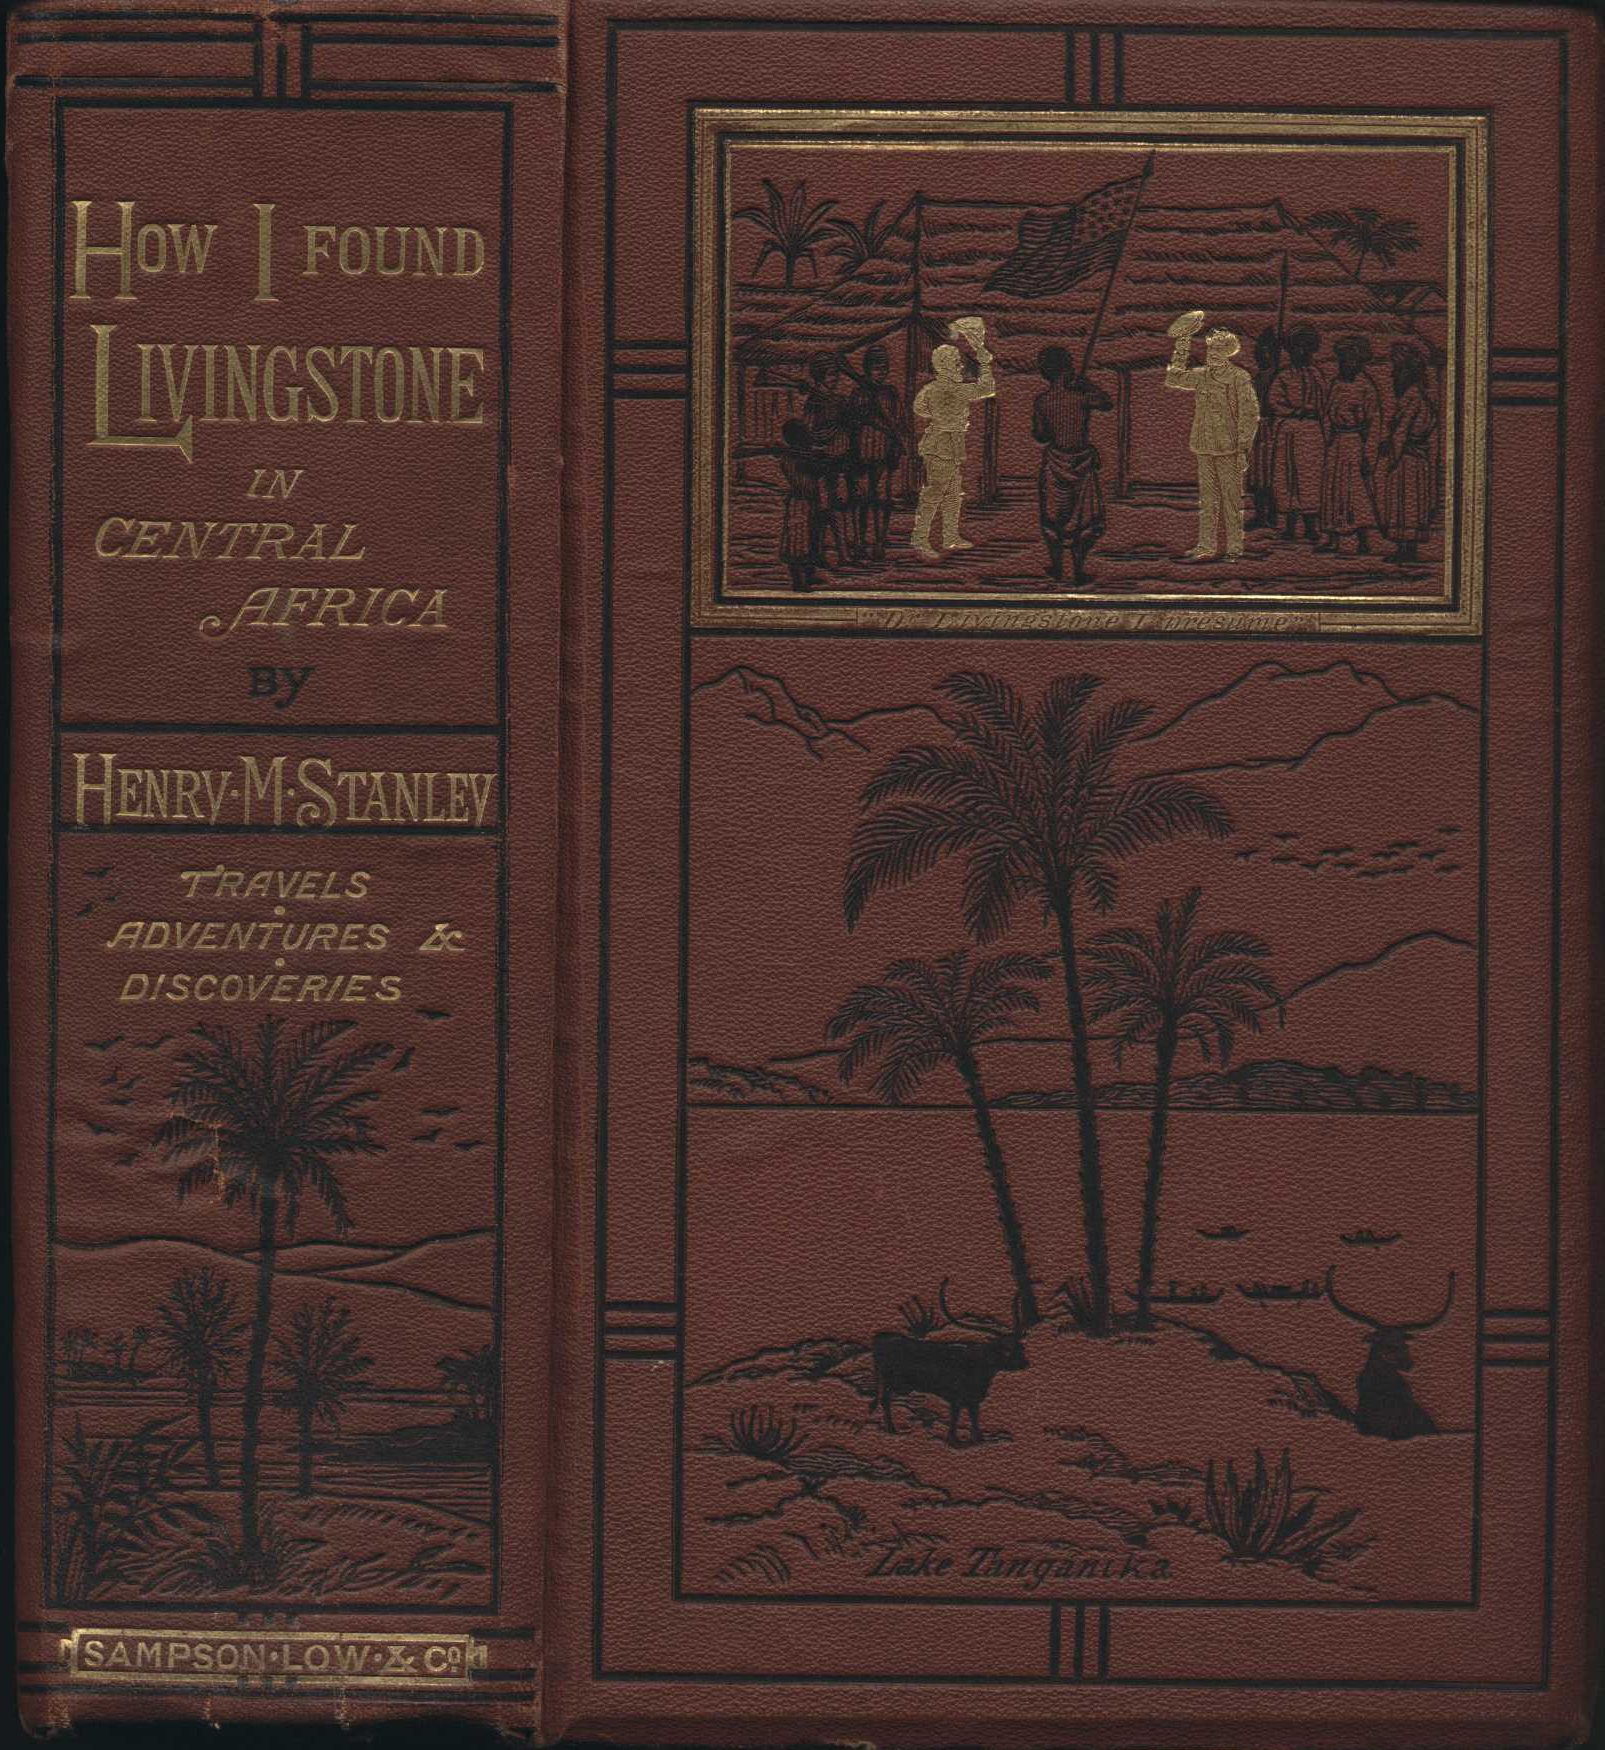 Henry M. Stanley. How I found Livingstone: travels, adventures, and discoveries in Central Africa, including four months' residence with Dr. Livingstone. 2nd edition. London: S. Low, Marston, Low, and Searle, 1872.